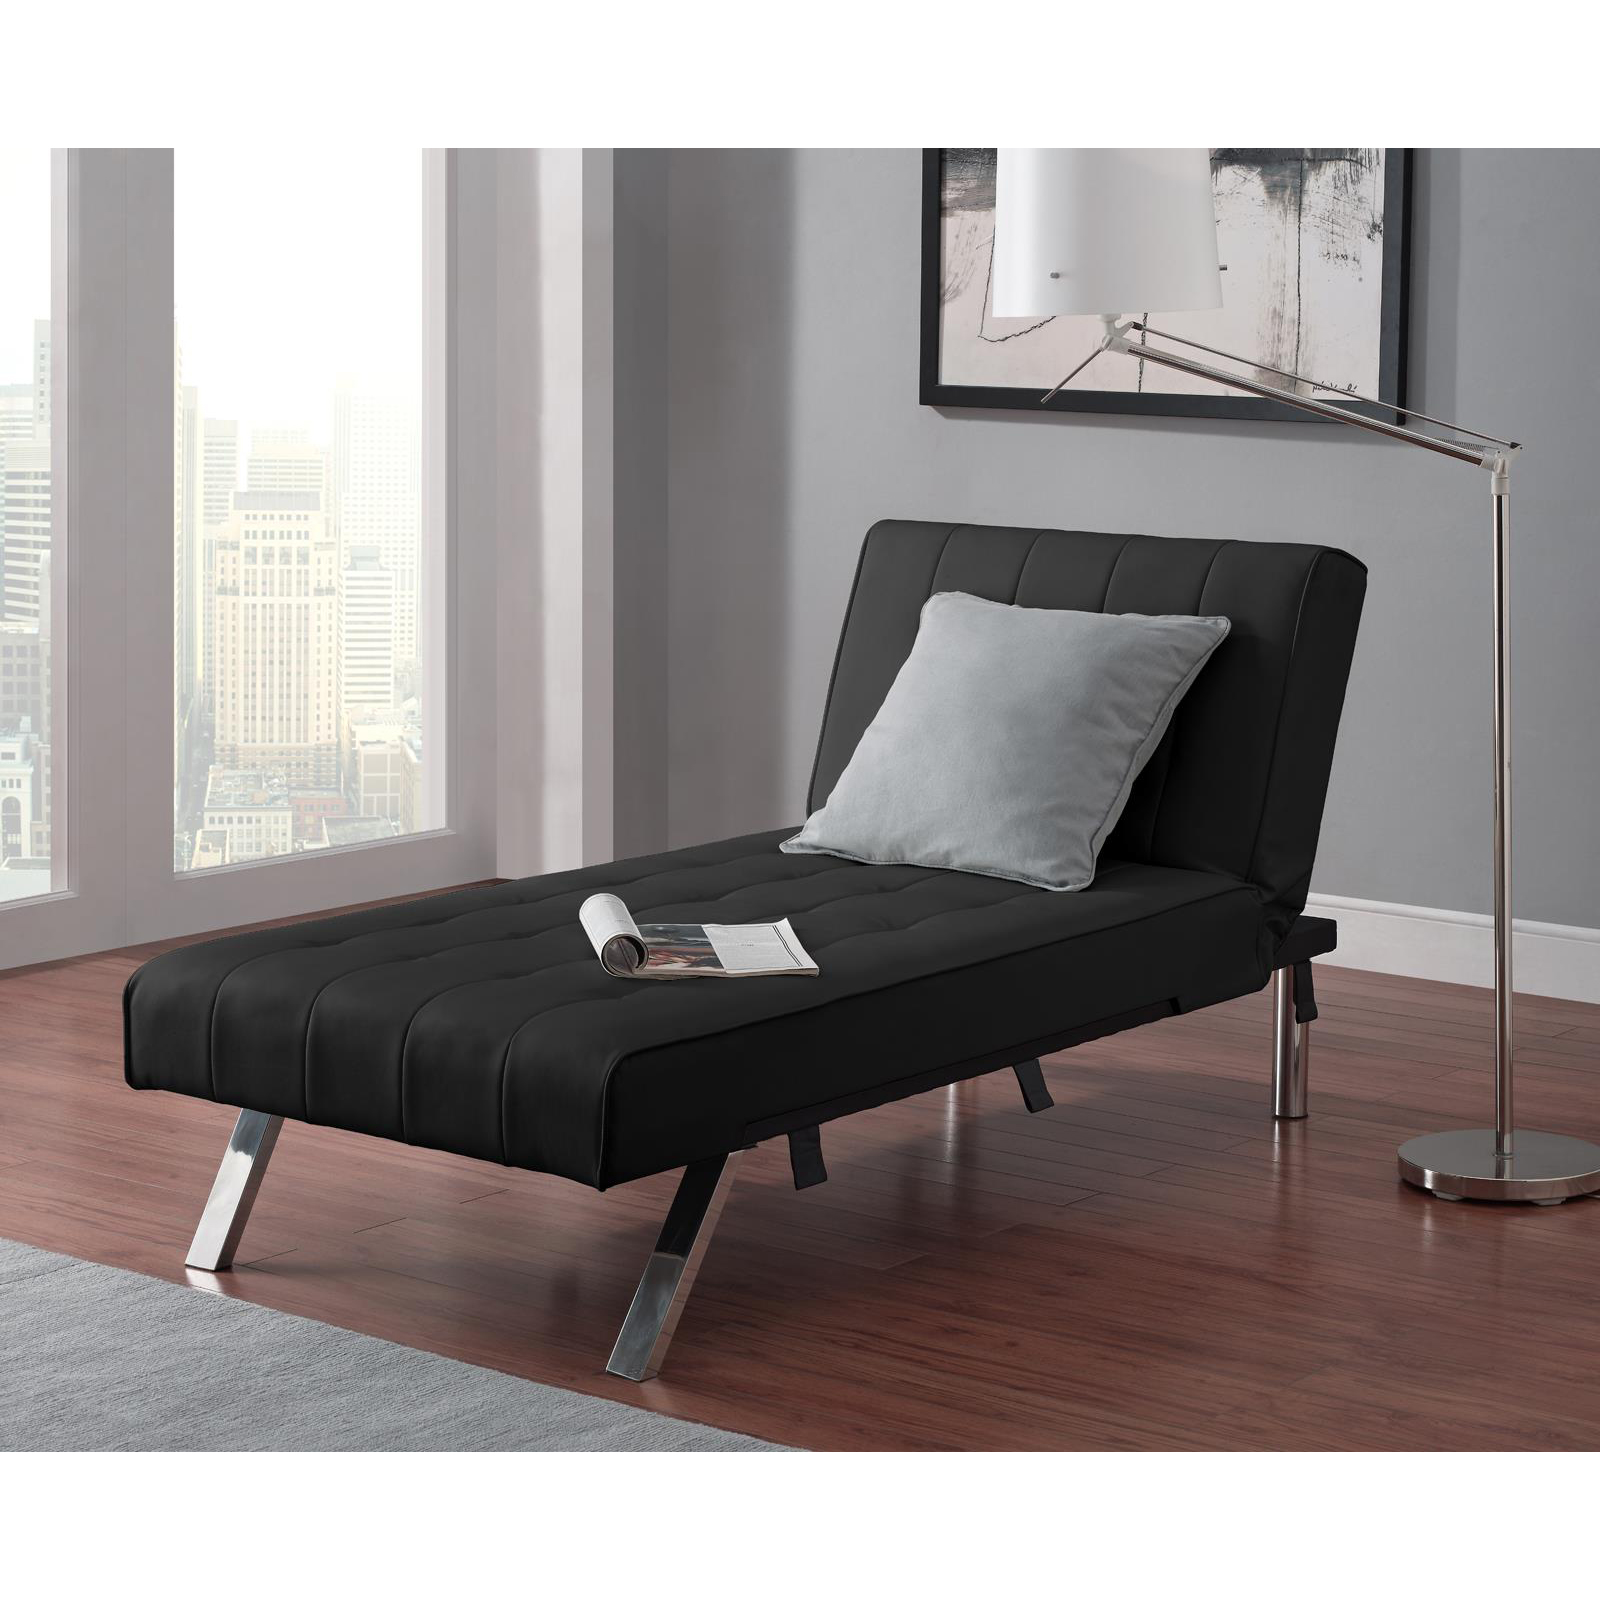 Dhp emily faux leather chaise lounge indoor chaise for Chaise lounge contemporary